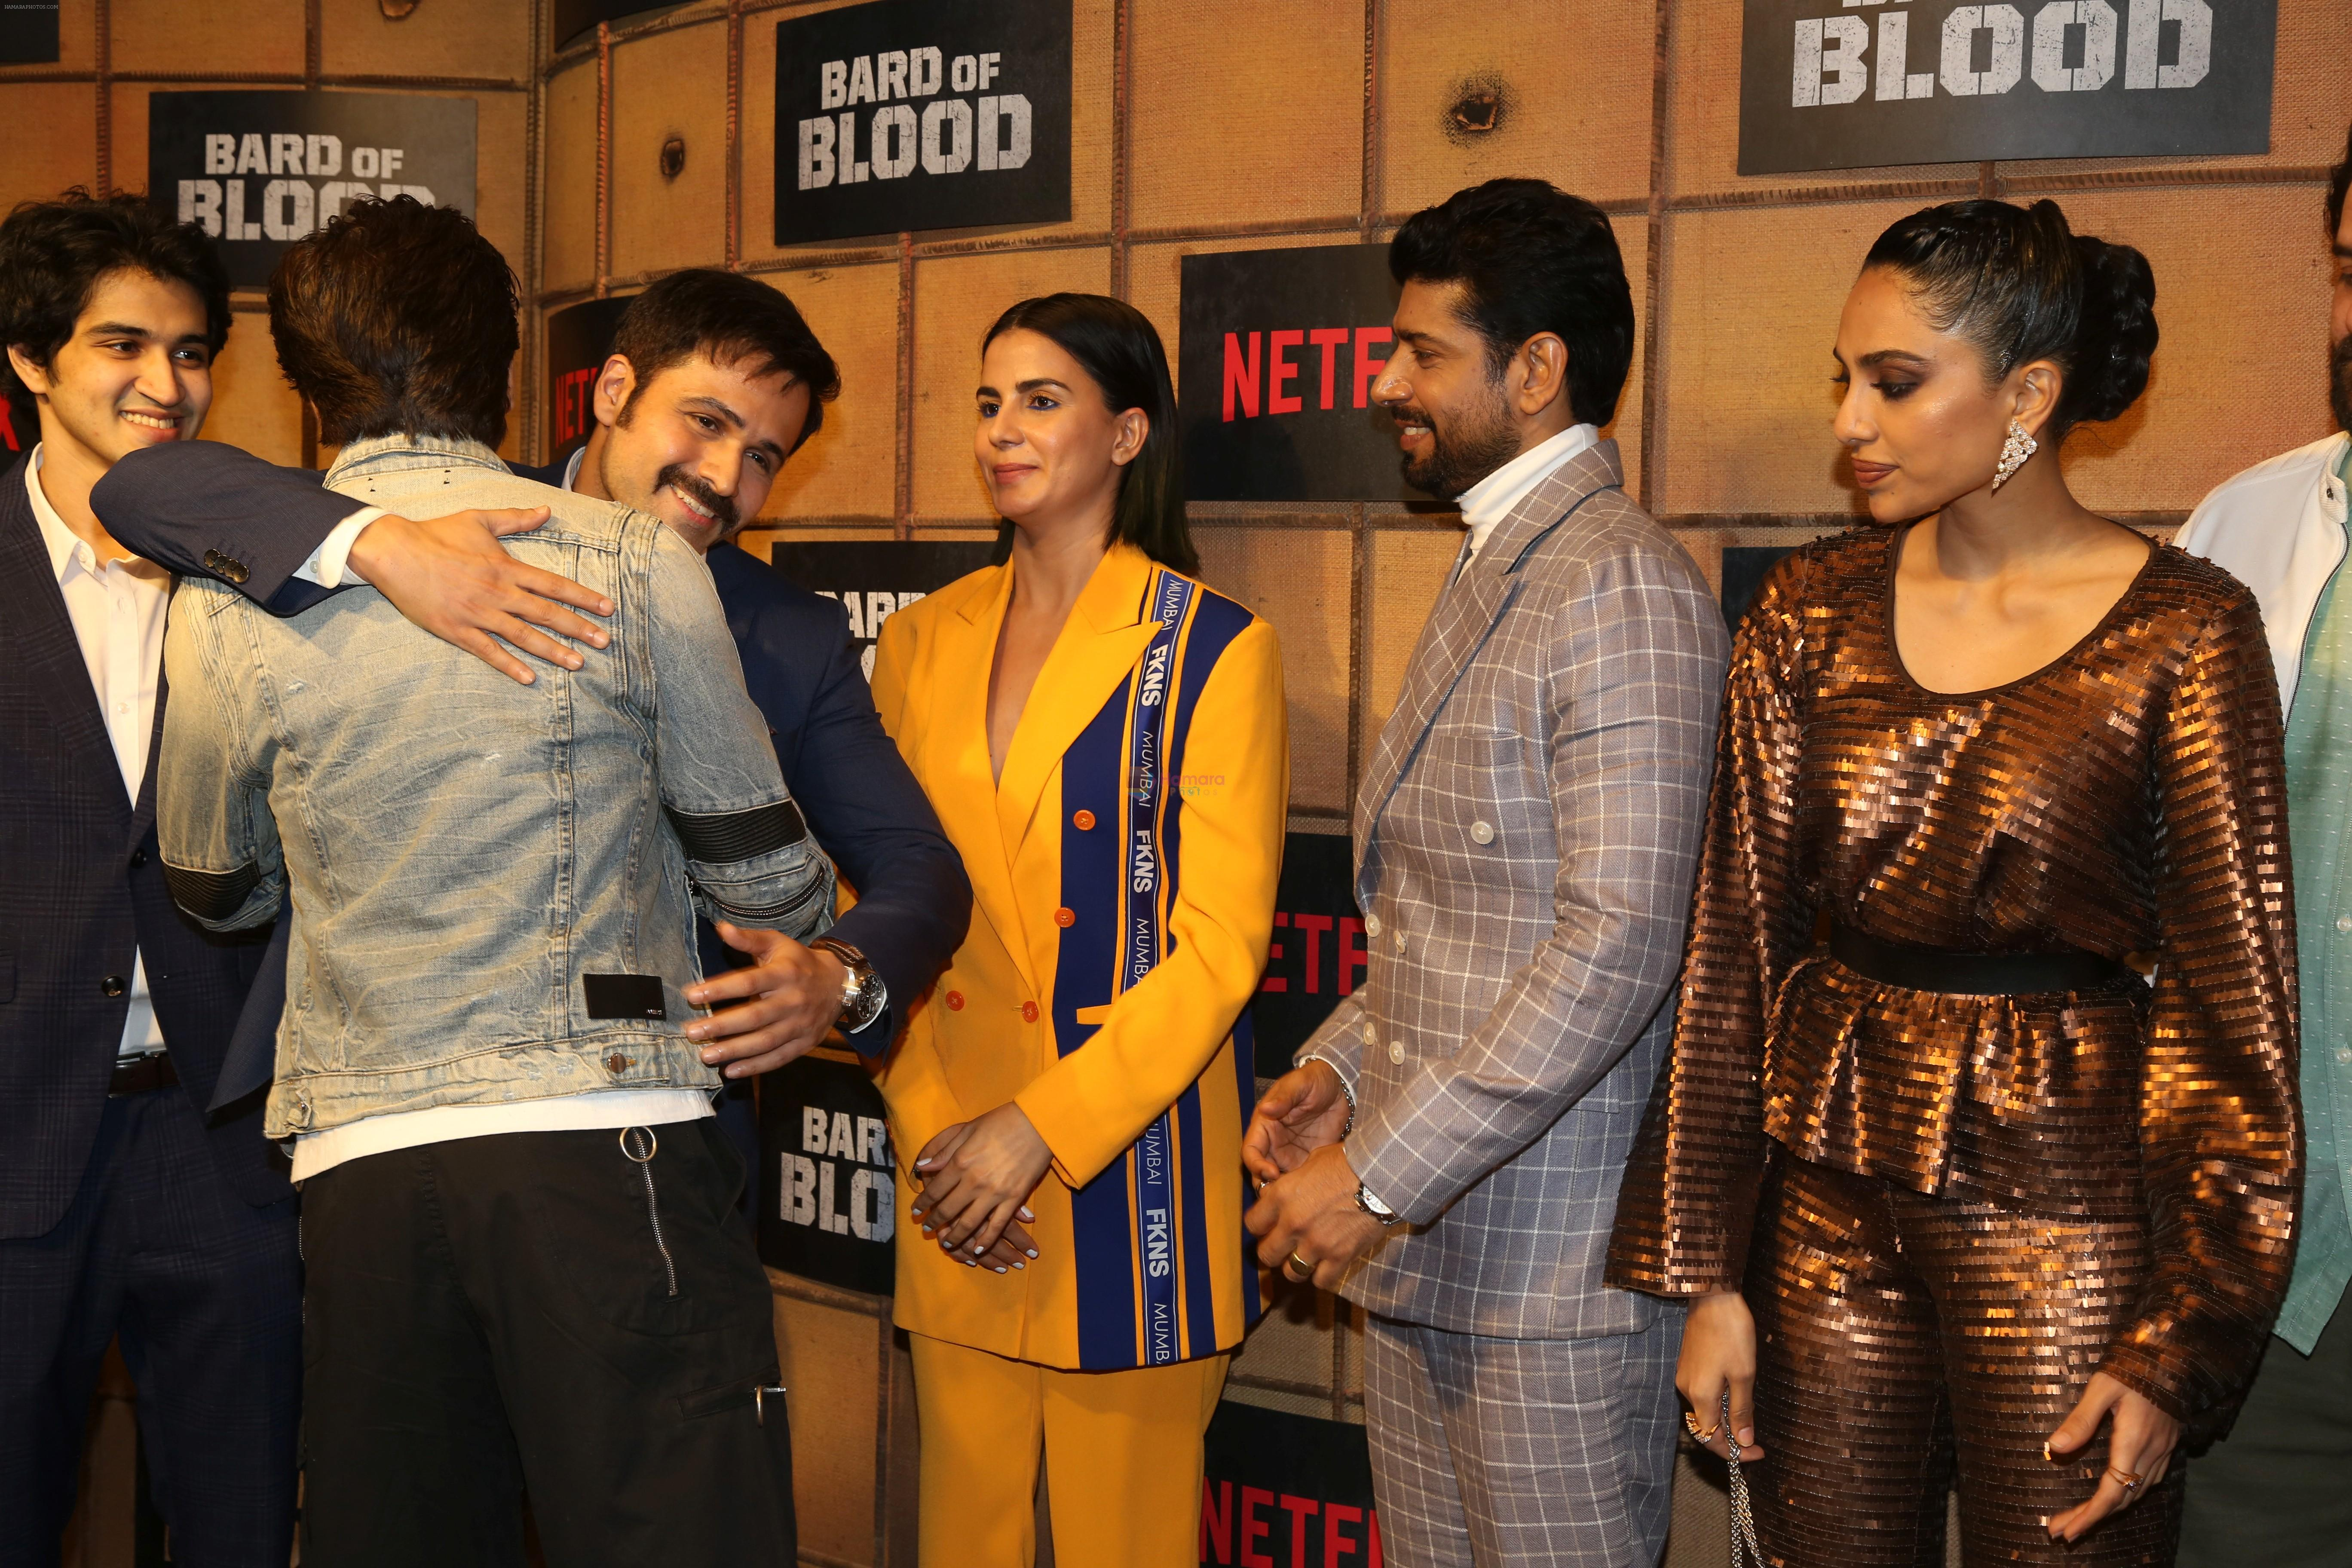 Emraan Hashmi, Kirti Kulhari, Shah Rukh Khan at the screening Netflix Bard of Blood in pvr Phoenix lower parel on 24th Sept 2019